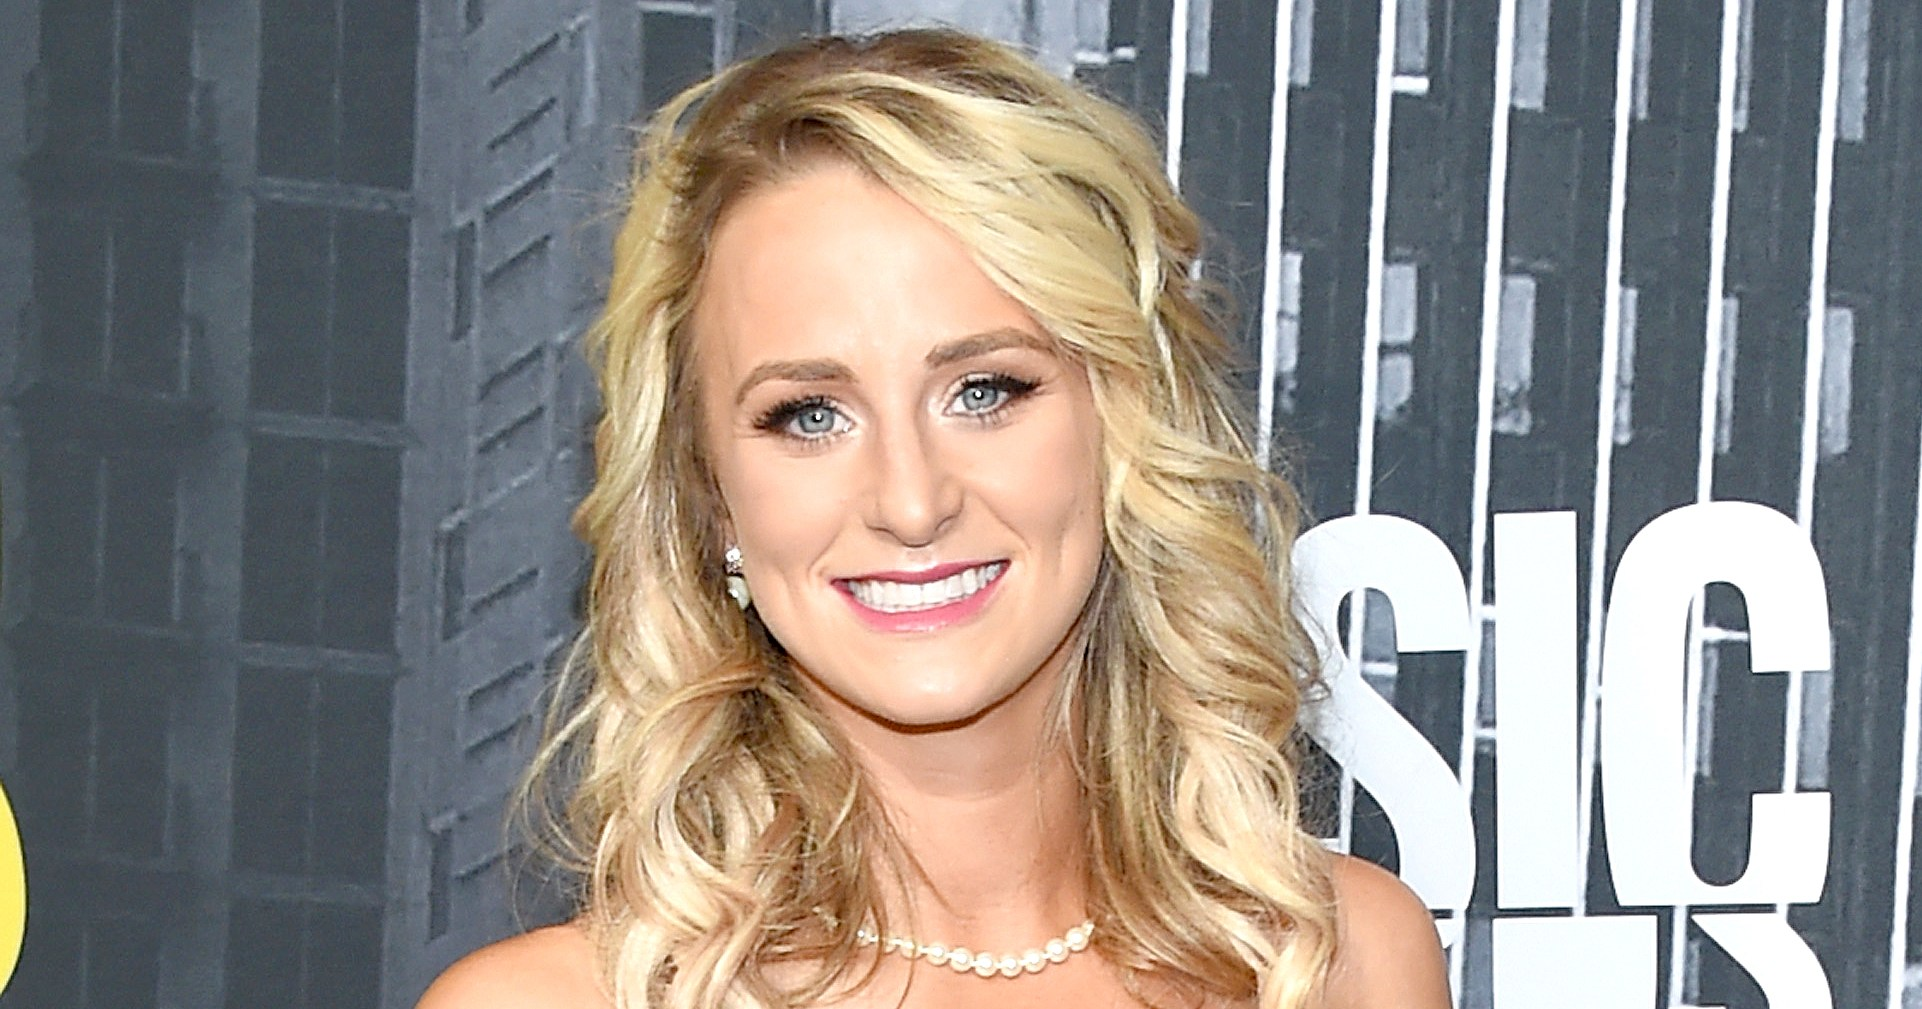 Leah Messer Updates Fans on Daughter's Health Post-Hospitalization